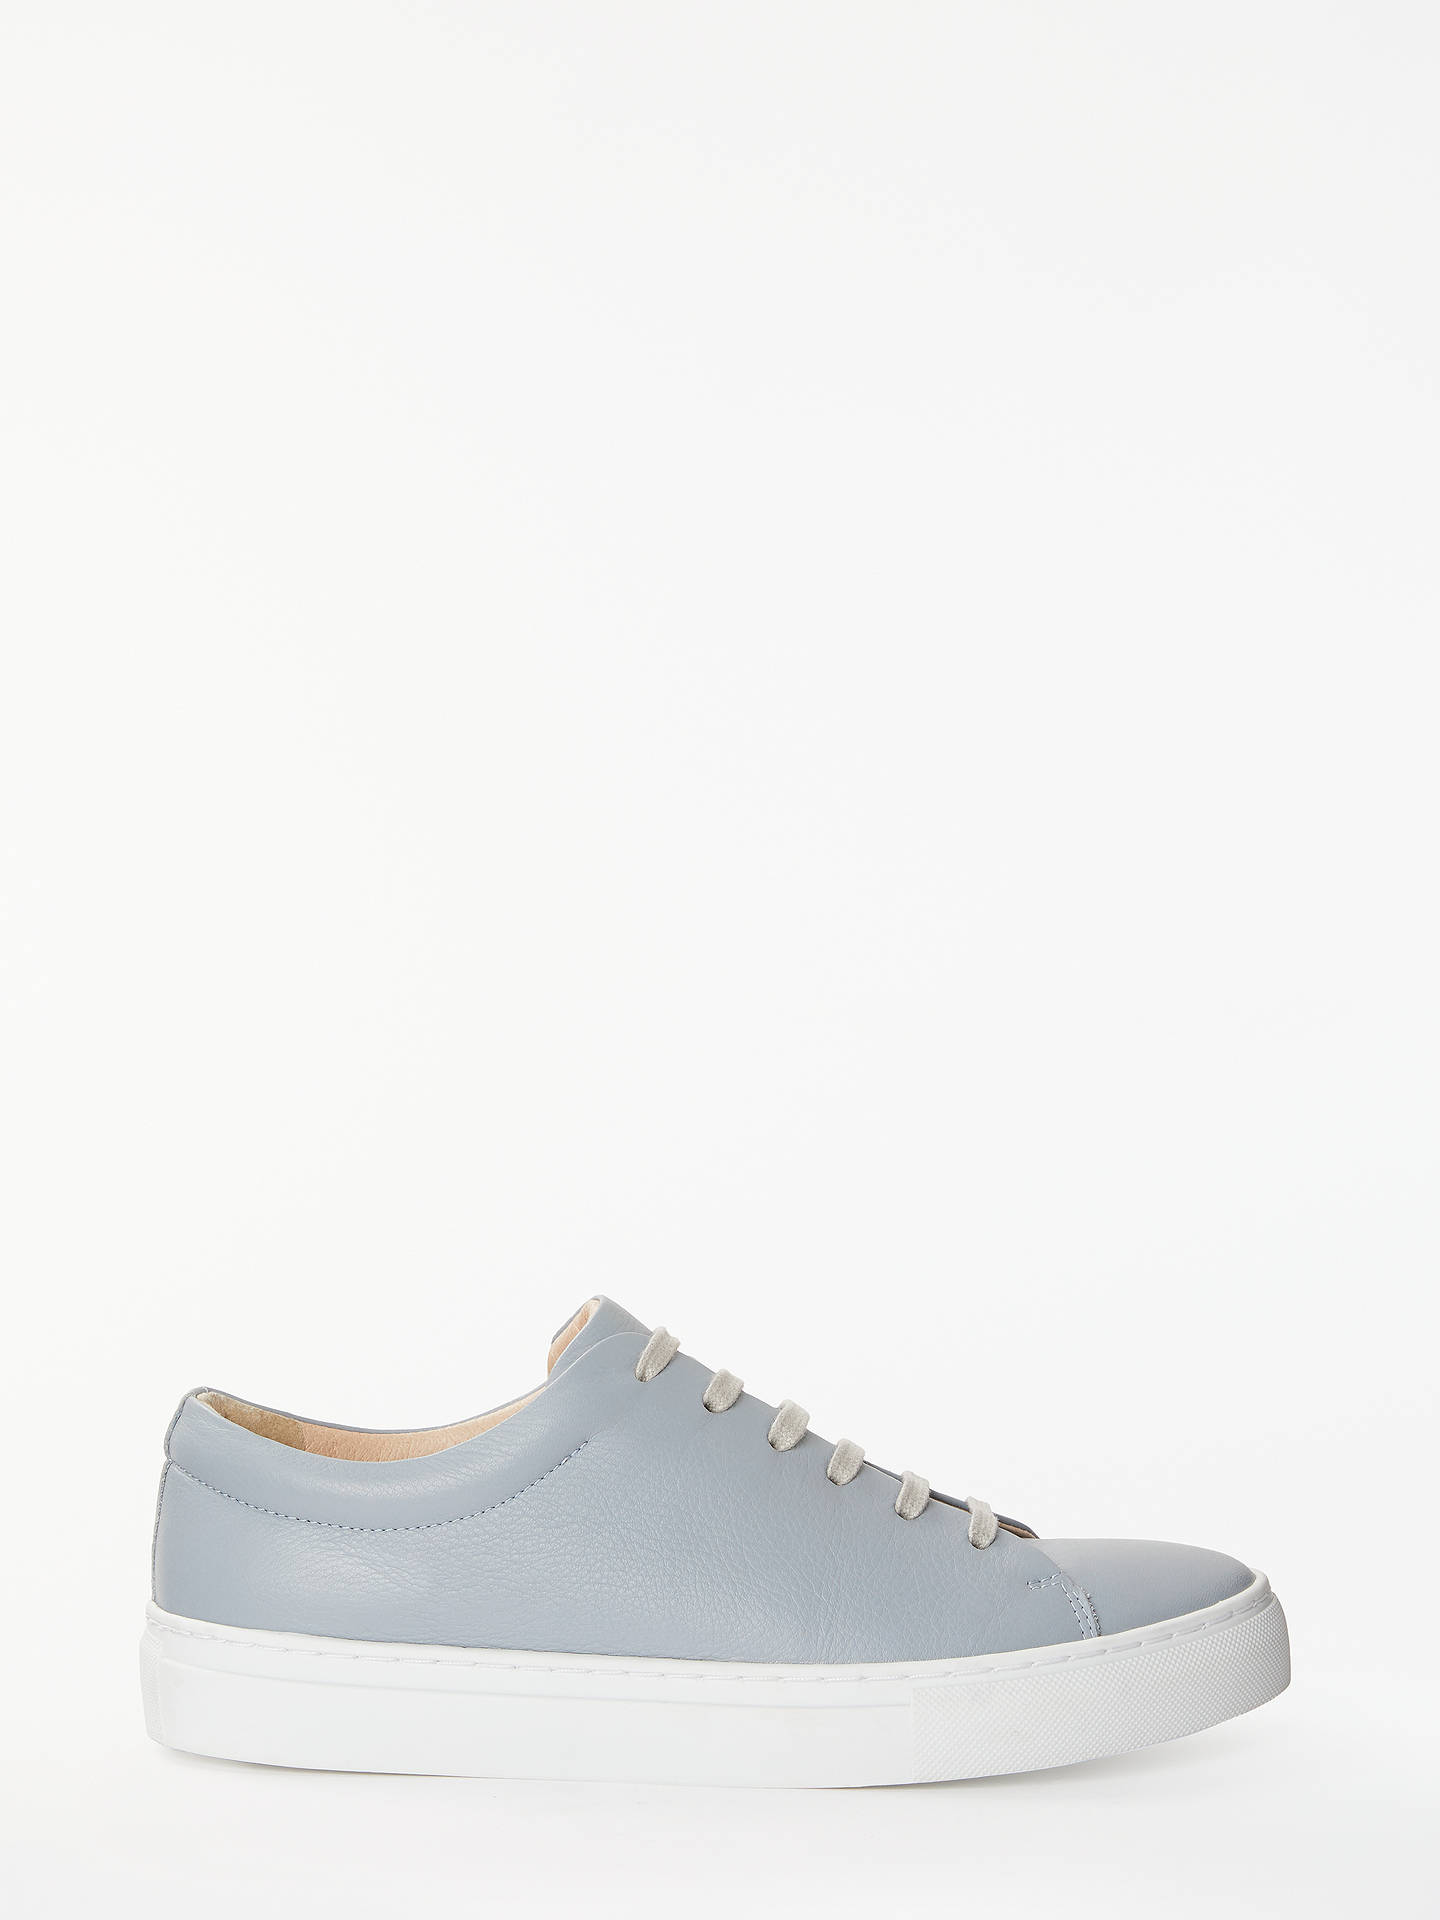 BuyJohn Lewis & Partners Flora Lace Up Trainers, Grey Leather, 8 Online at johnlewis.com